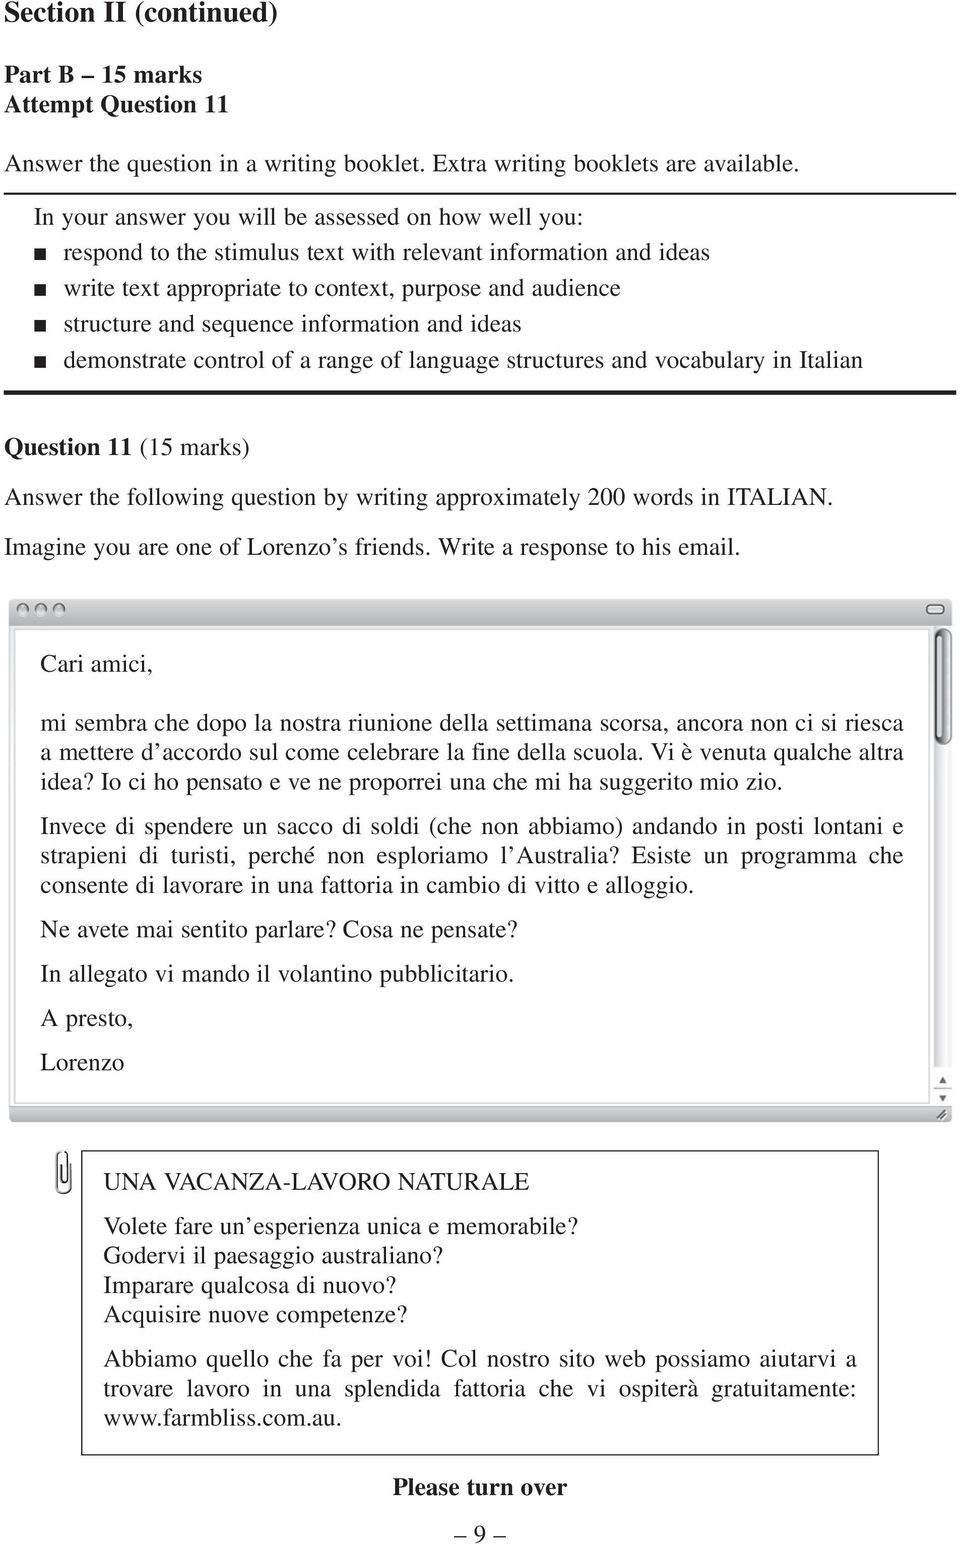 information and ideas demonstrate control of a range of language structures and vocabulary in Italian Question 11 (15 marks) Answer the following question by writing approximately 200 words in